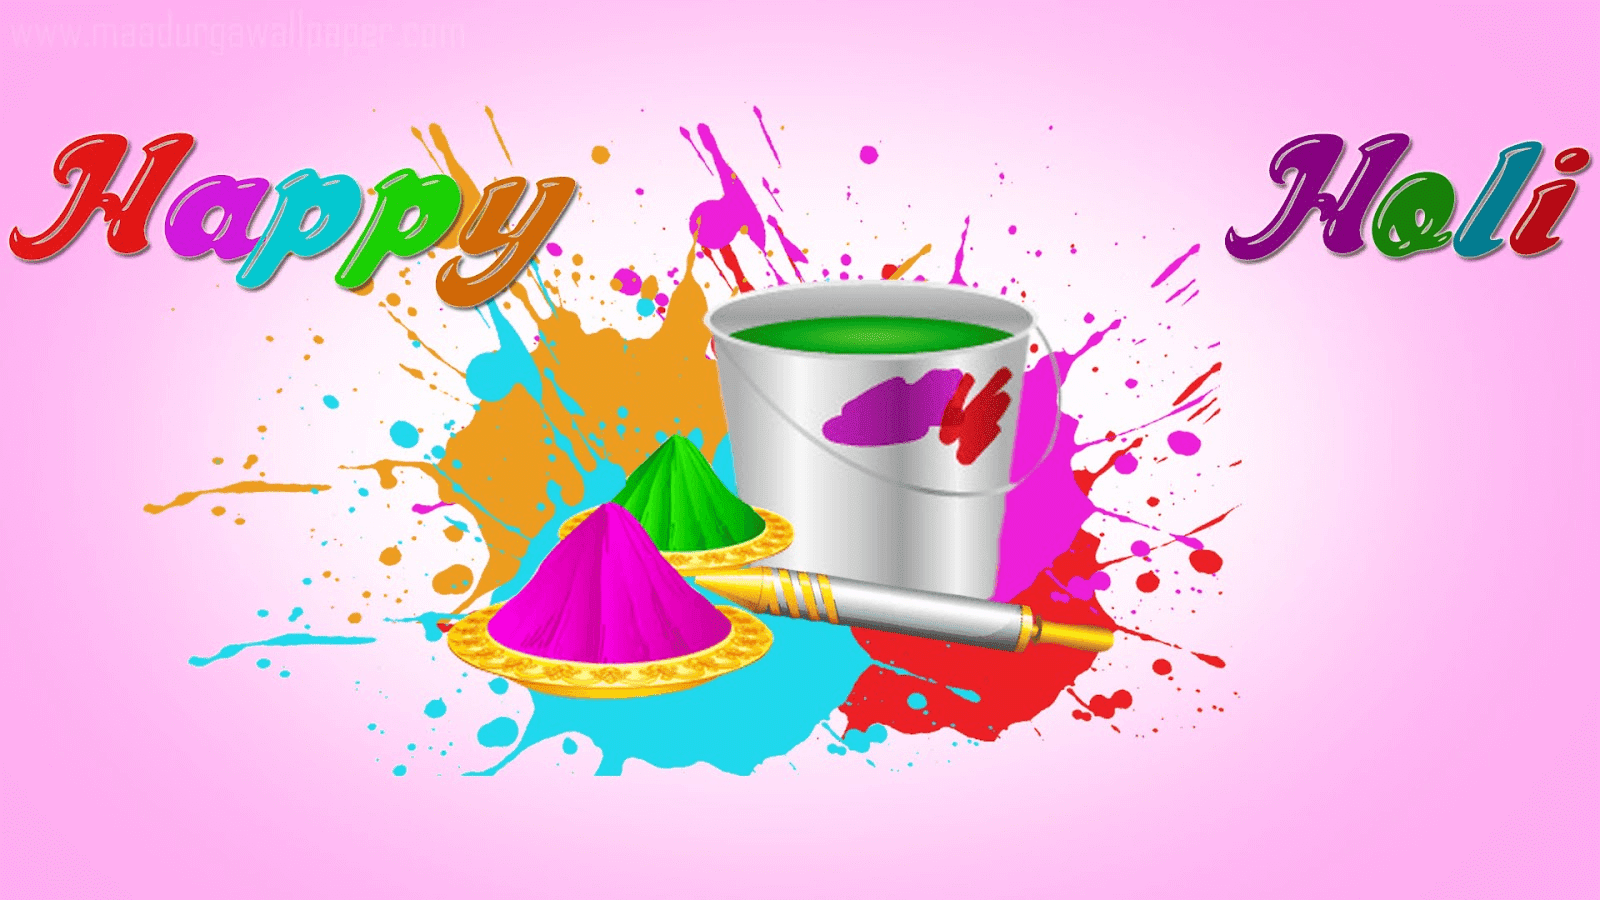 Happy holi festival of colors greeting wishes card quotas the hd happy holi festival of colors greeting wishes card kristyandbryce Image collections